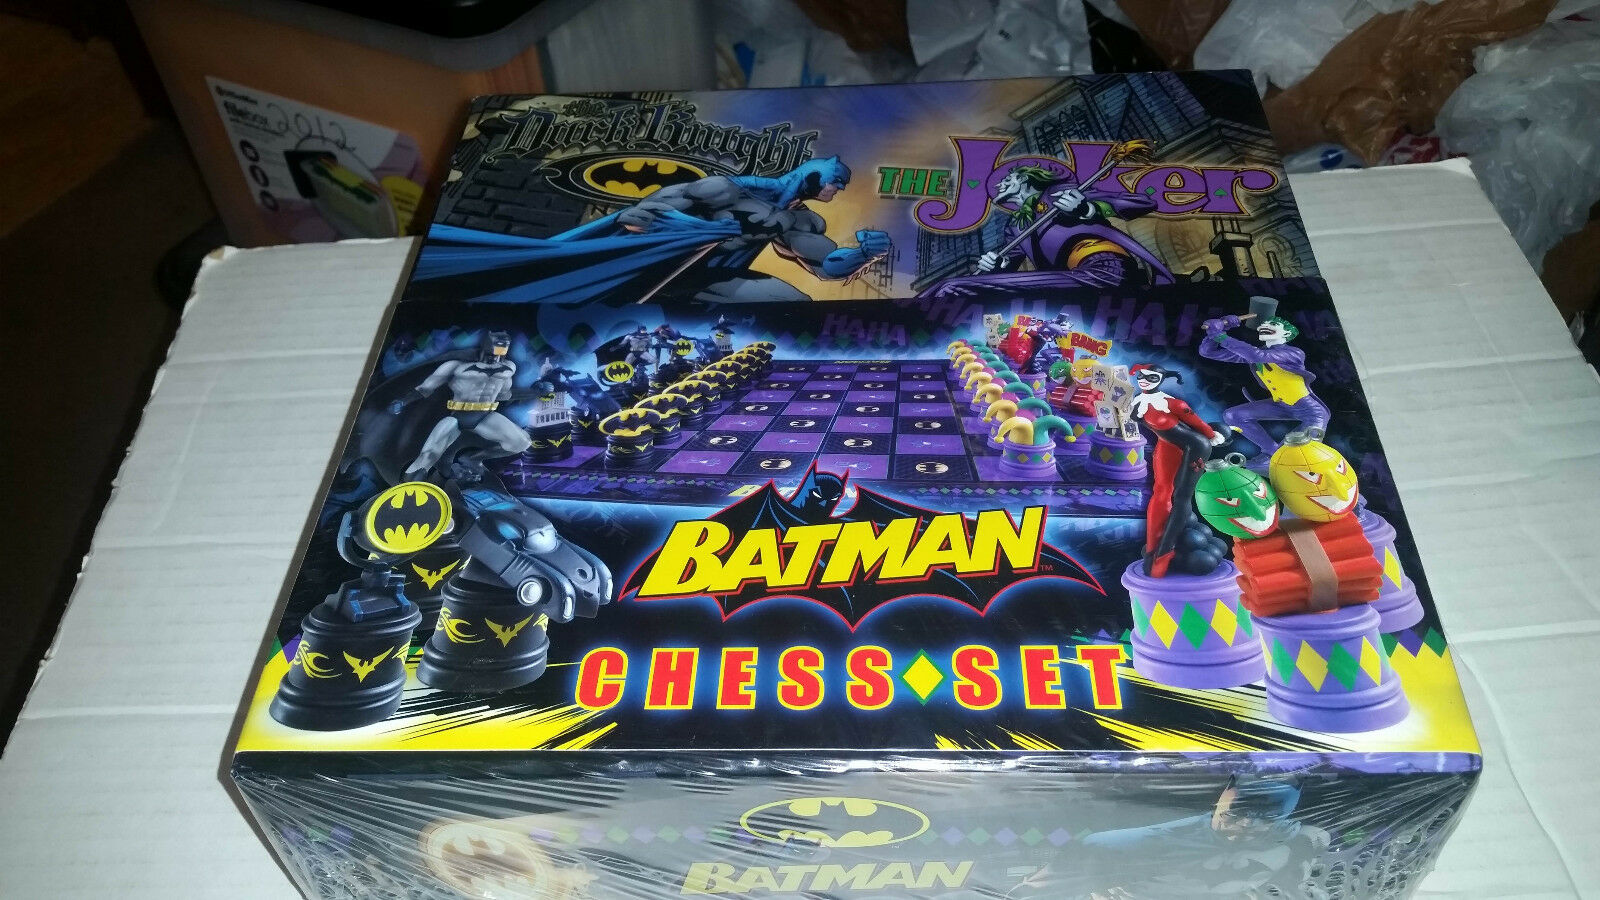 Batman vs Joker Chess Set NEW SEALED by the Noble Collection